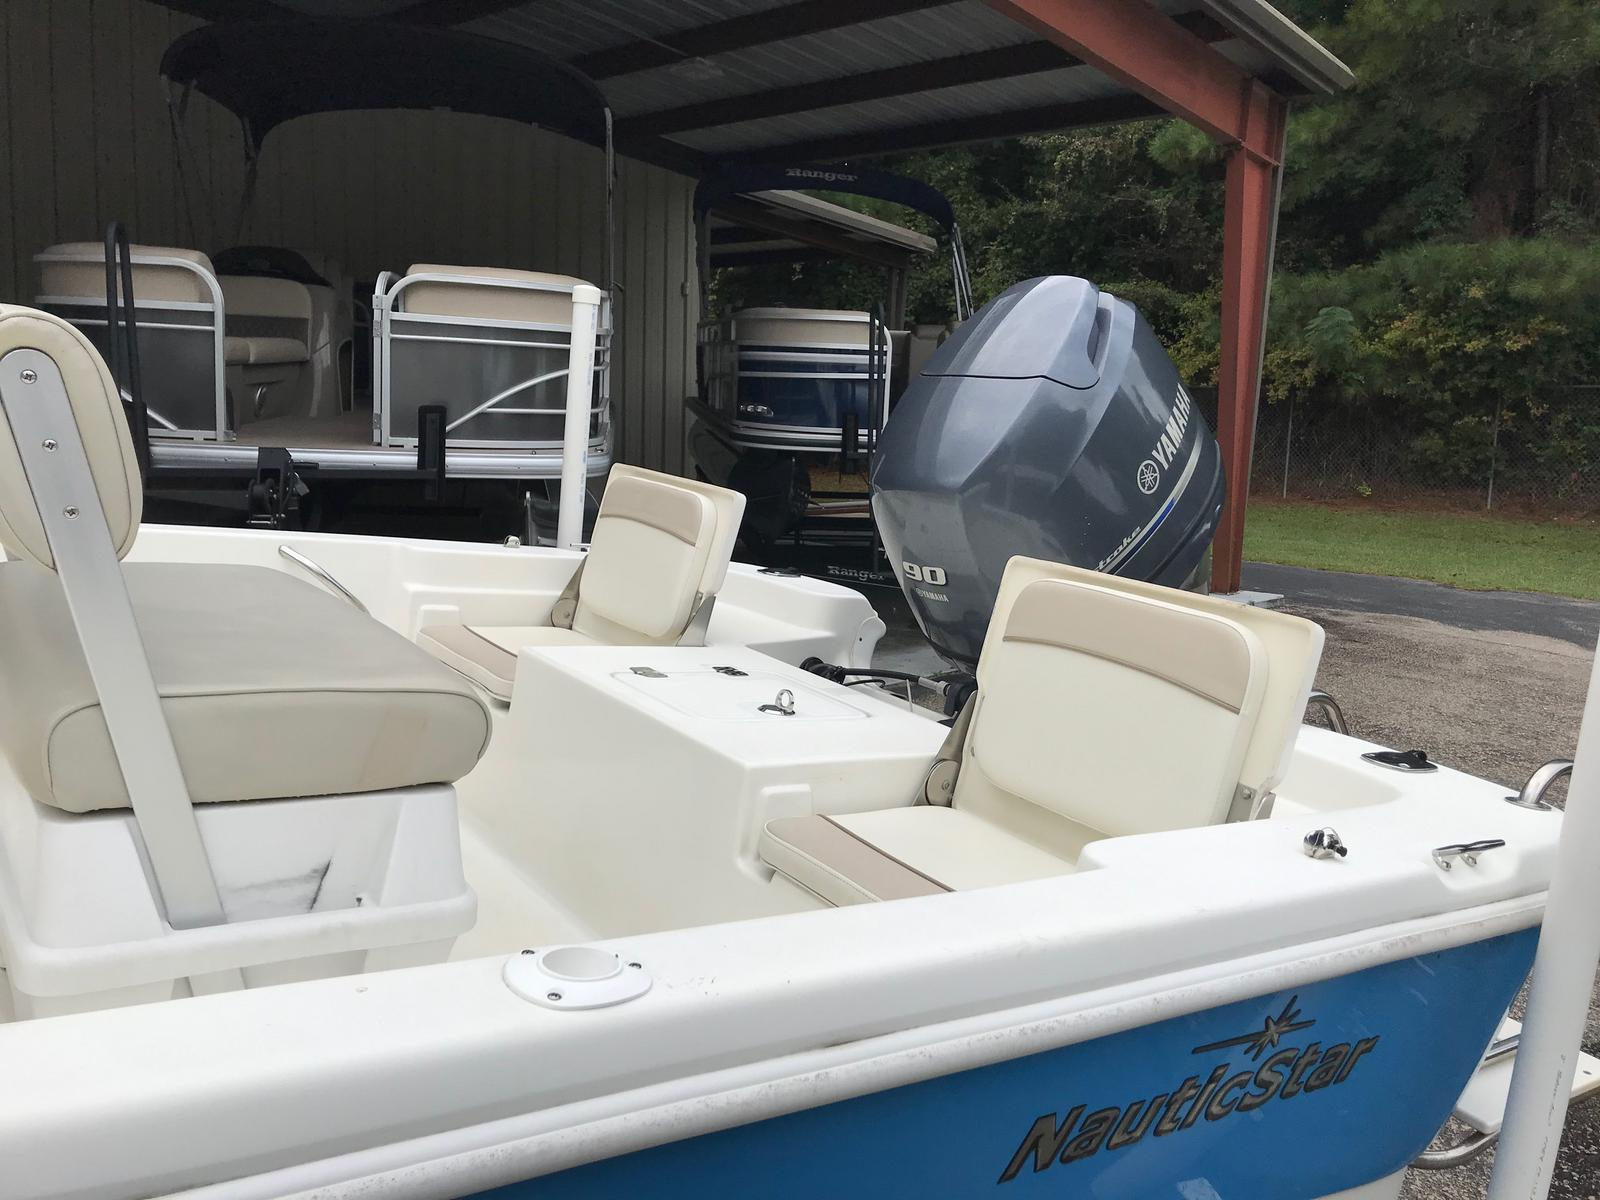 2015 Nautic Star boat for sale, model of the boat is 1810 & Image # 5 of 8